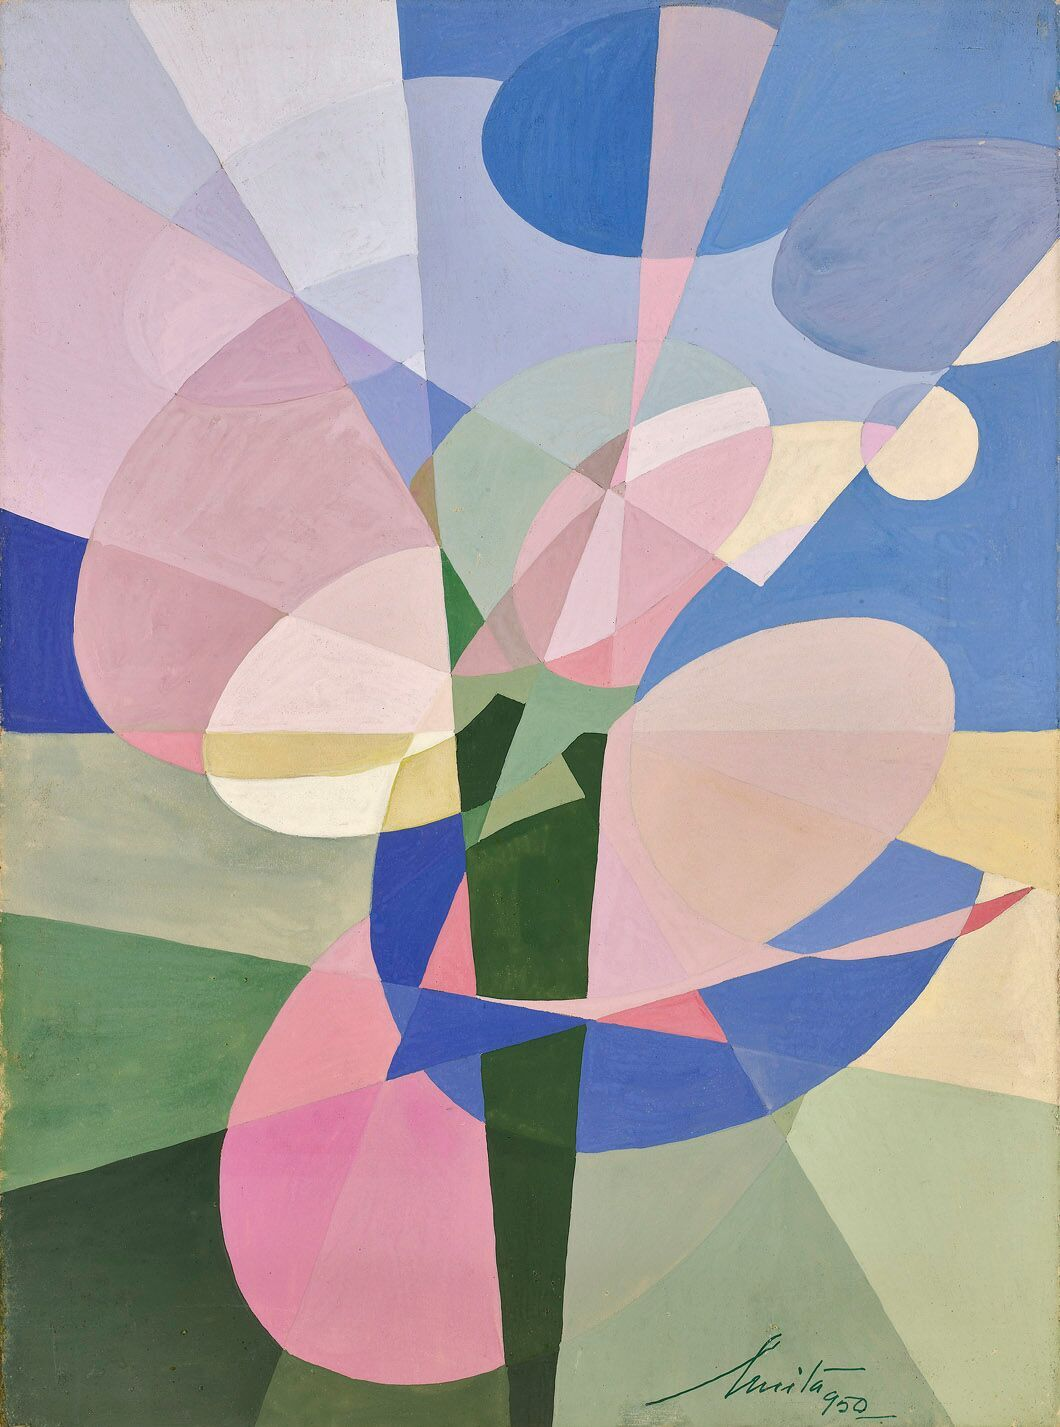 Anita Payró (1897-1980)   Untitled Abstract Composition , 1950  oil and tempera on board 14 1/2 x 10 3/4 inches; 36.8 x 27.3 centimeters